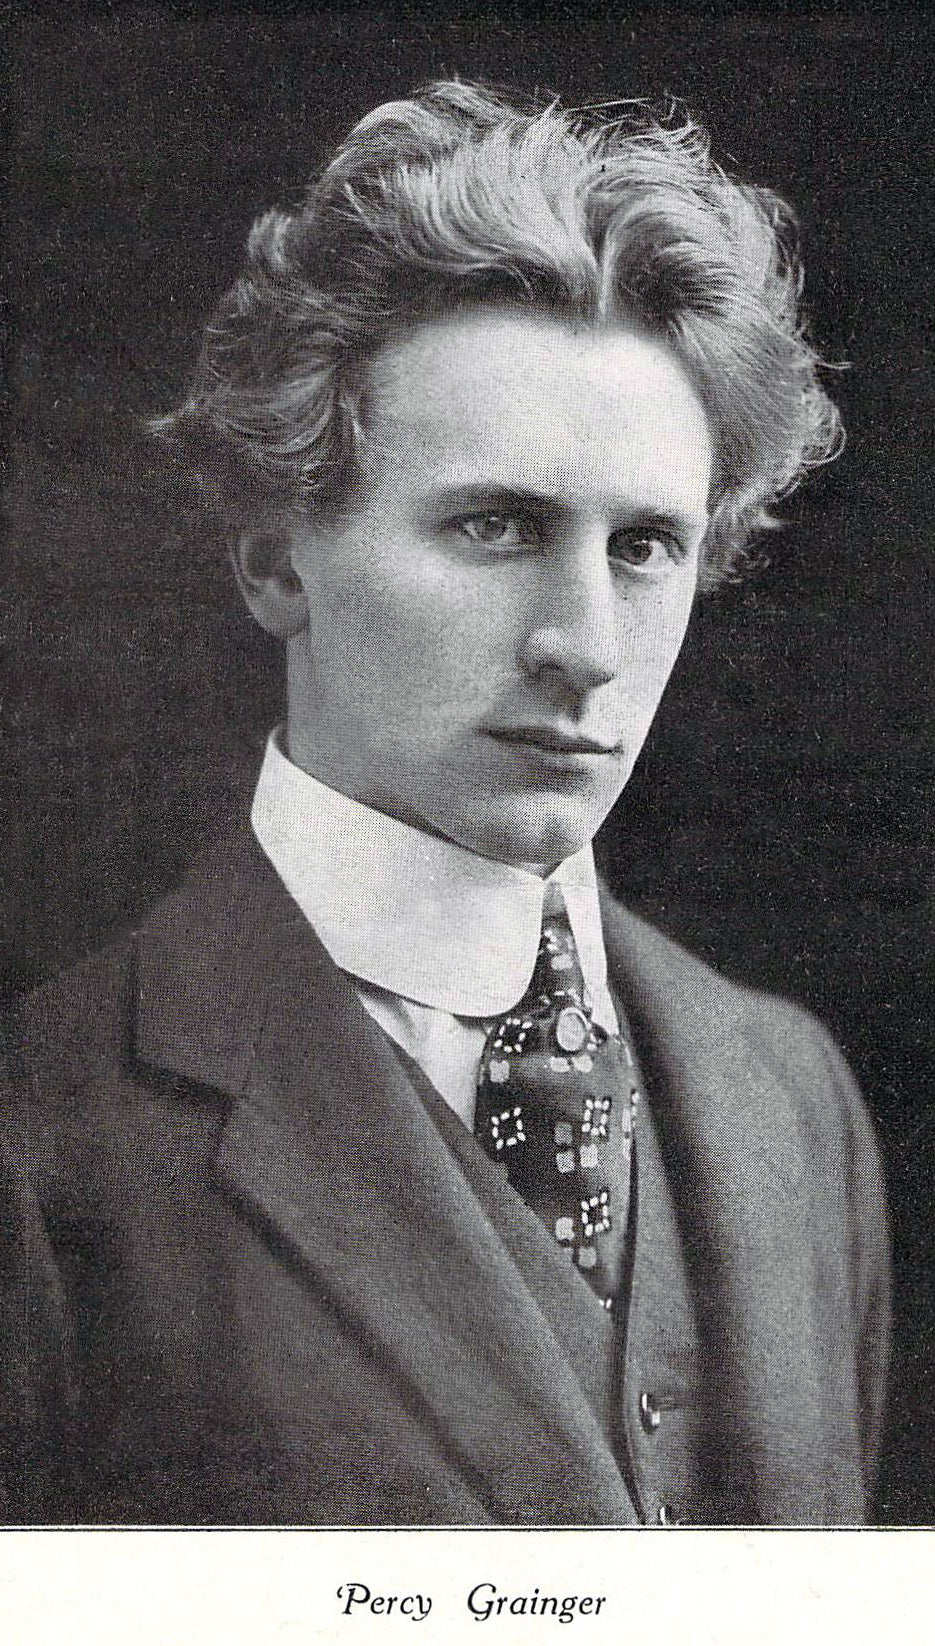 Percy Grainger photo at a young age